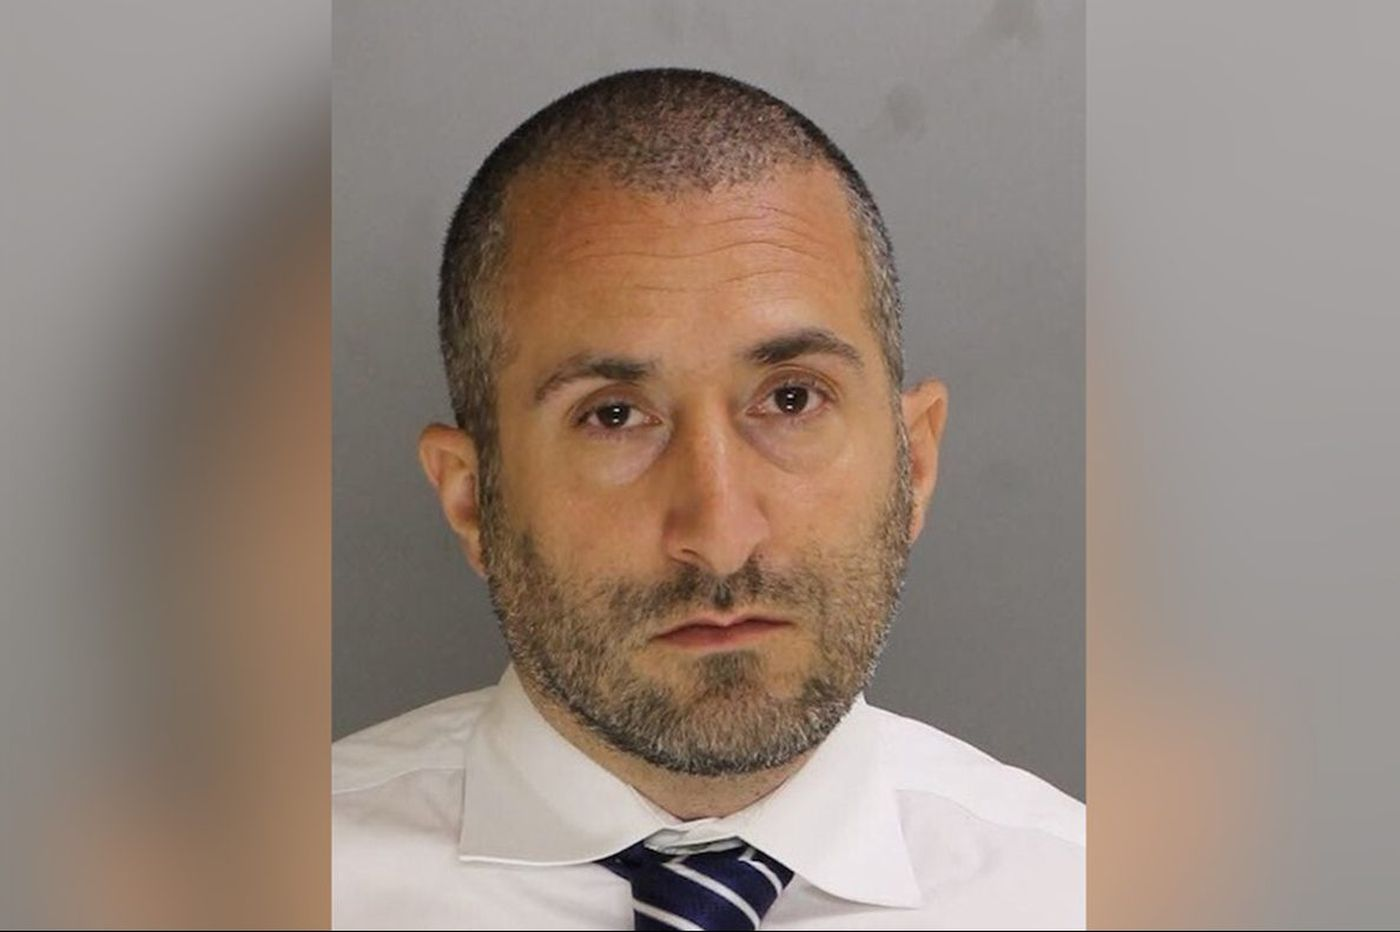 Suspended Chester County lawyer charged with defrauding dozens of clients